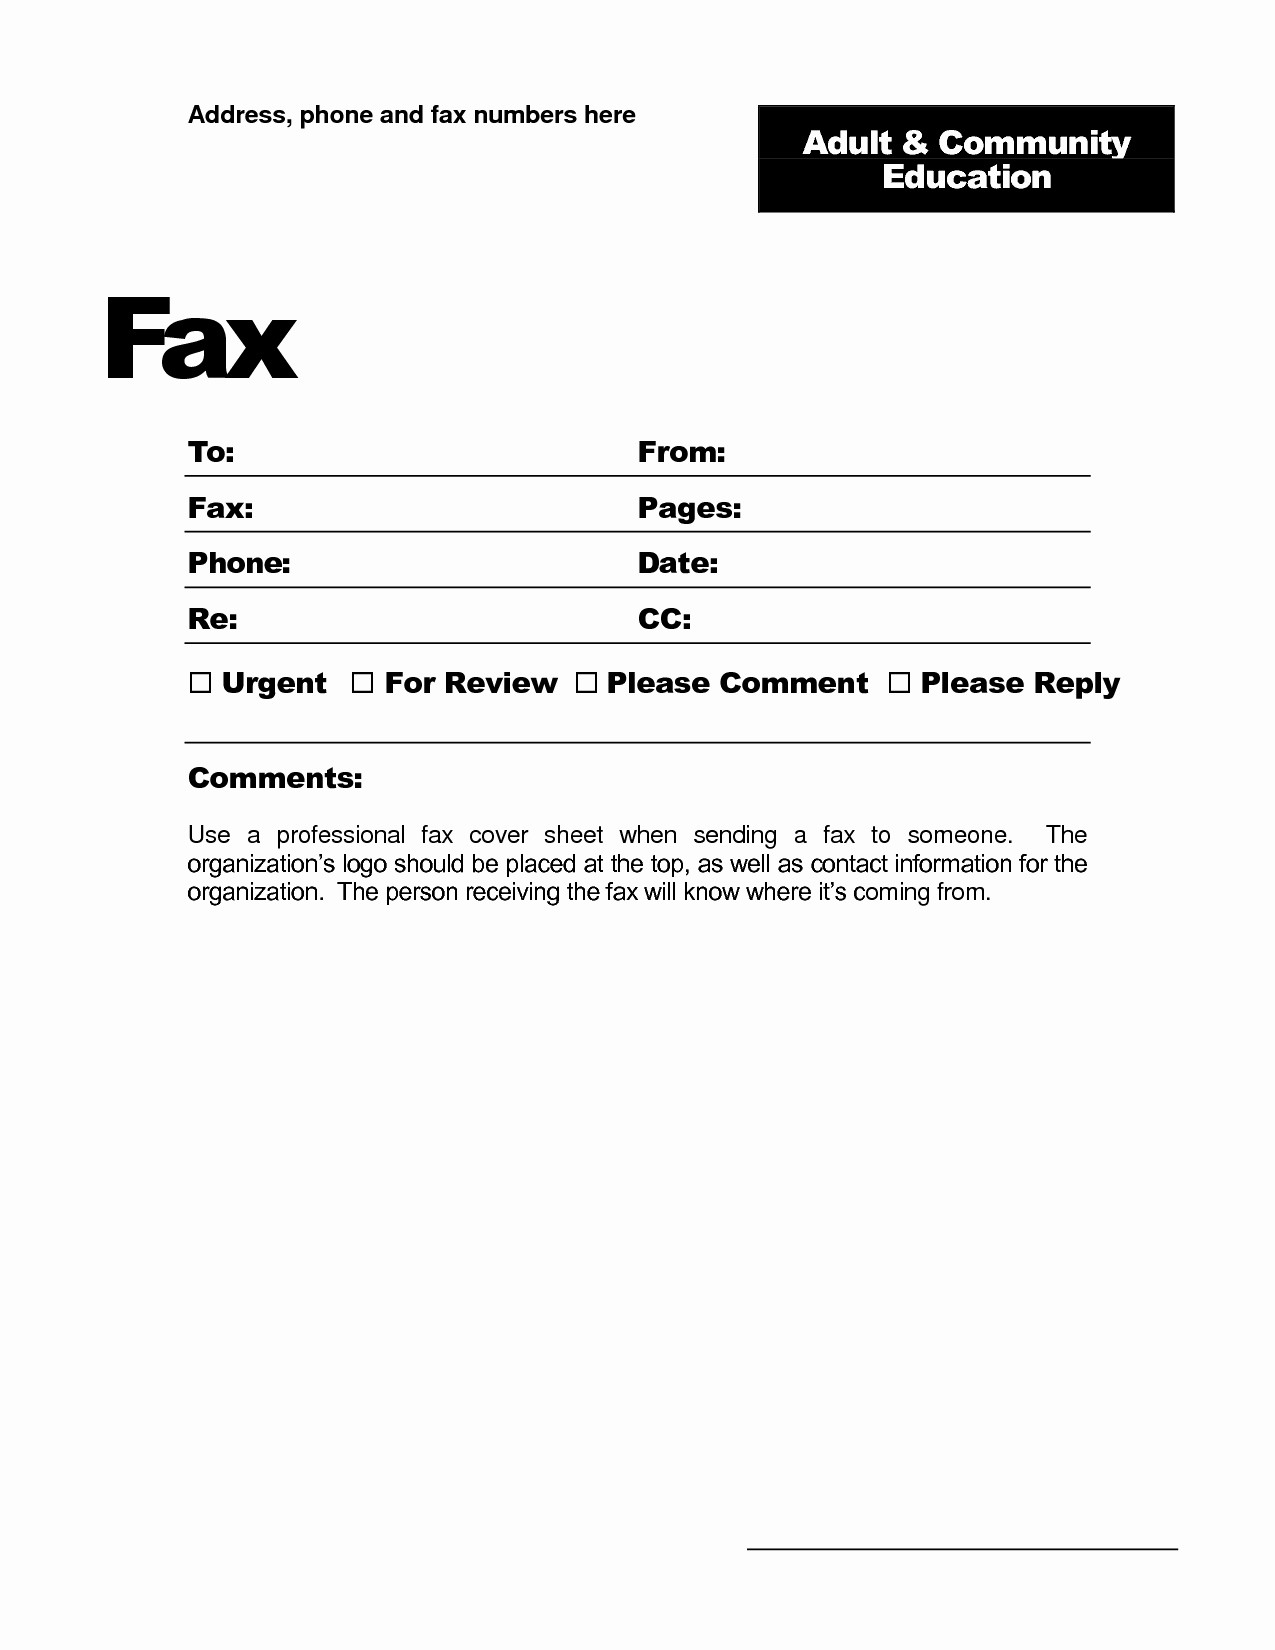 Word Template Fax Cover Sheet Awesome Fax Cover Sheet Template Word Unique Microsoft Fice